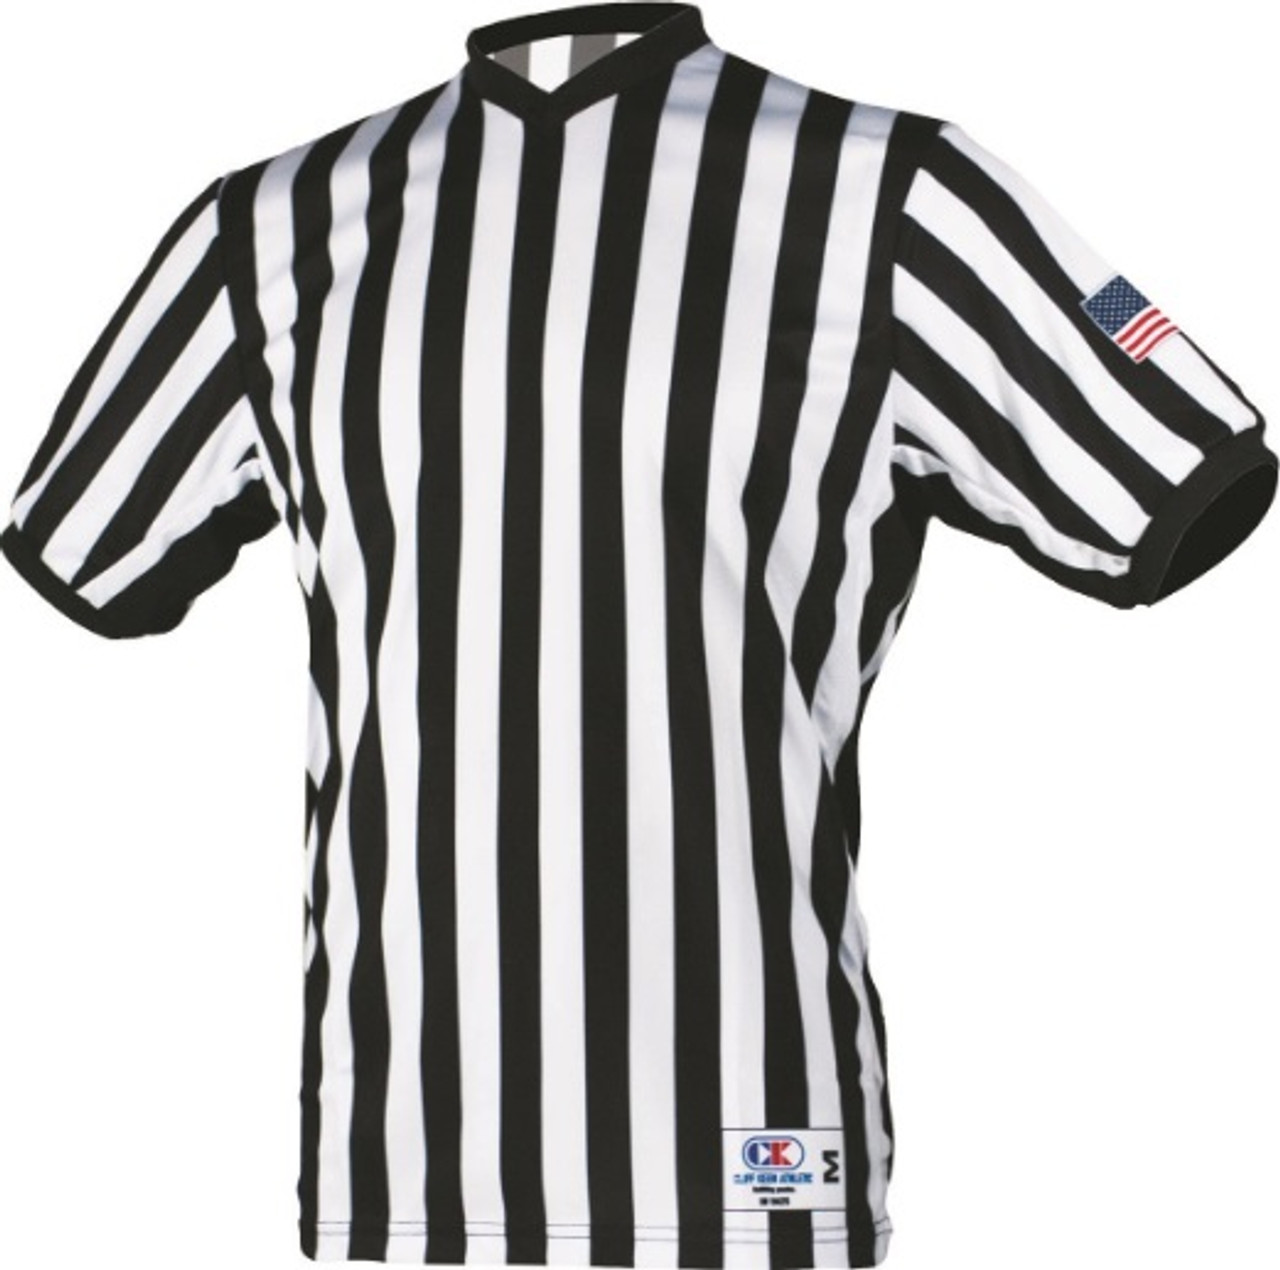 Cliff Keen Side Panel Basketball Shirt with Sublimated Flag